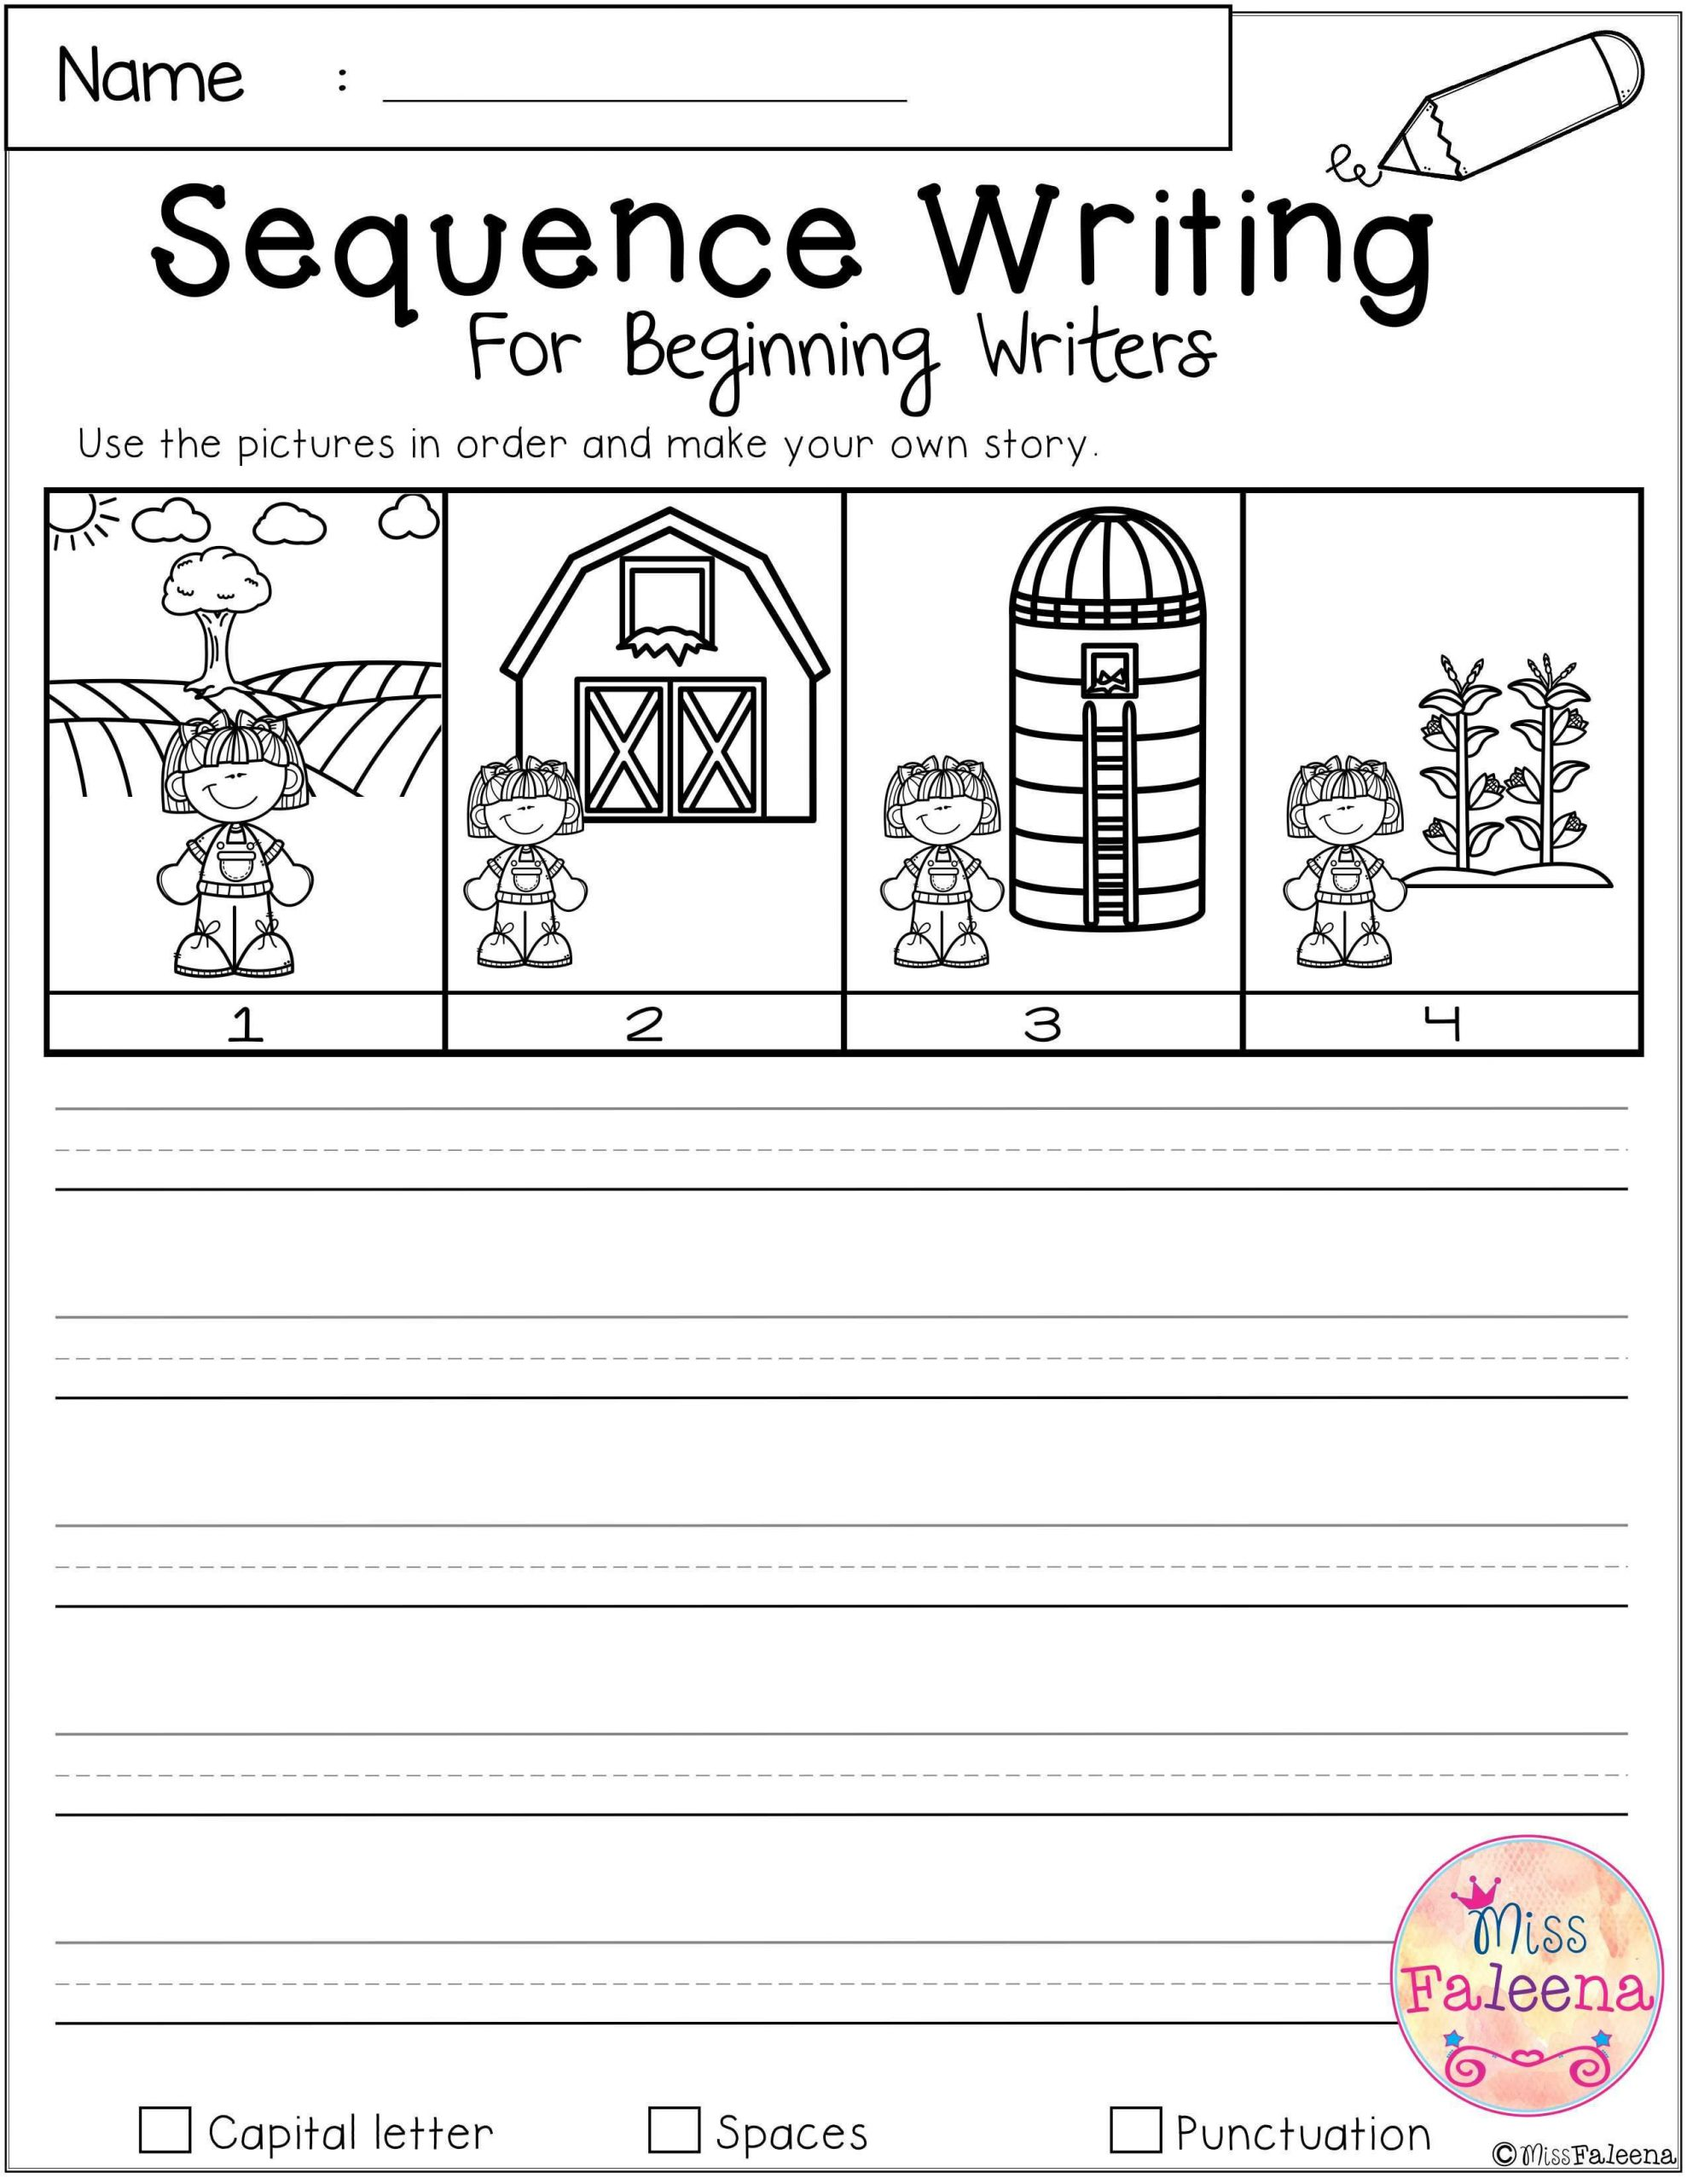 Sequencing Worksheets Middle School Free Sequence Writing for Beginning Writers